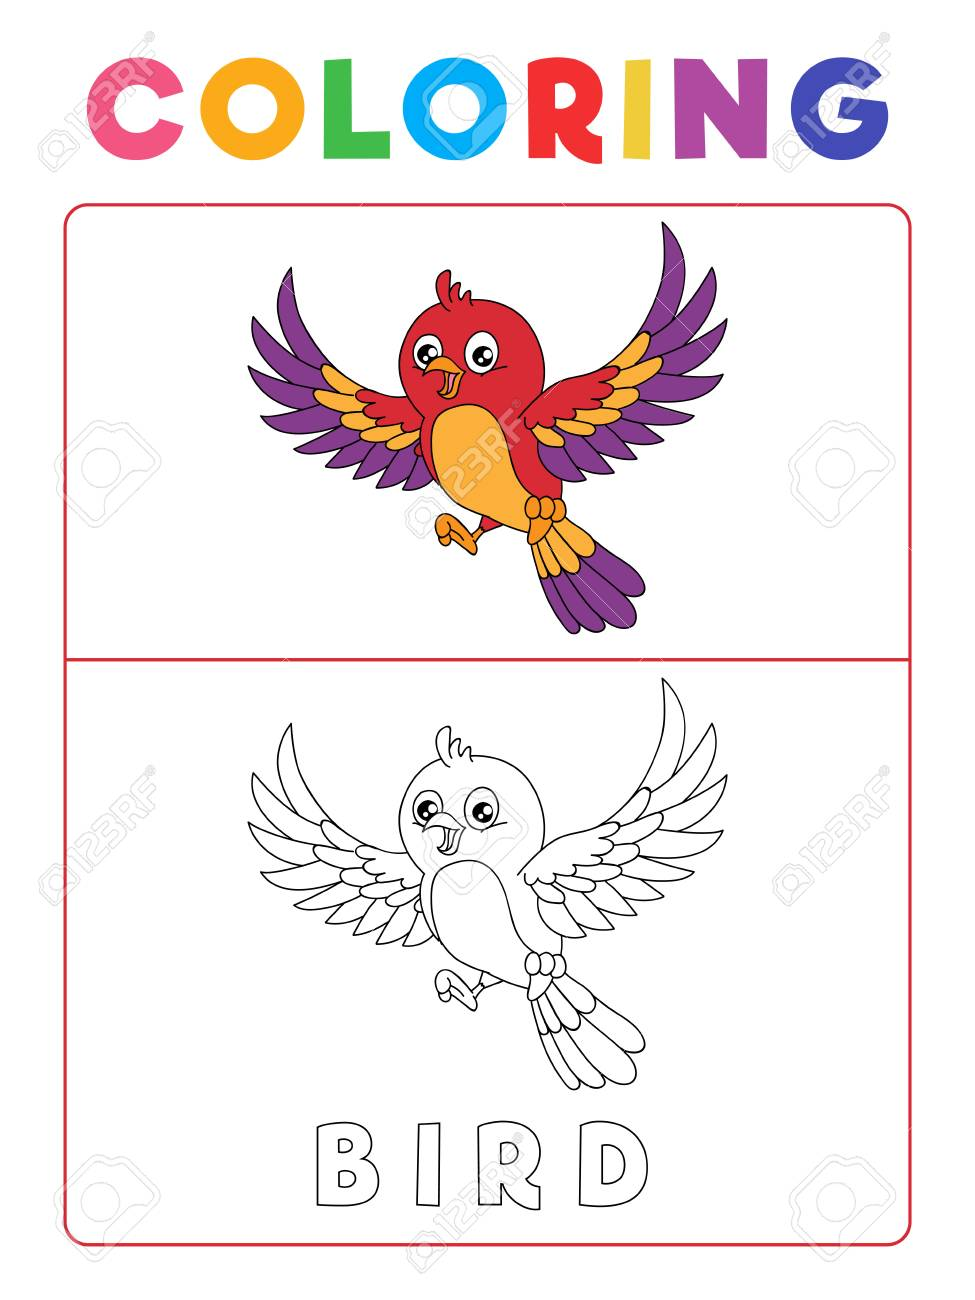 Funny Bird Coloring Book With Example Preschool Worksheet For Royalty Free Cliparts Vectors And Stock Illustration Image 116465243